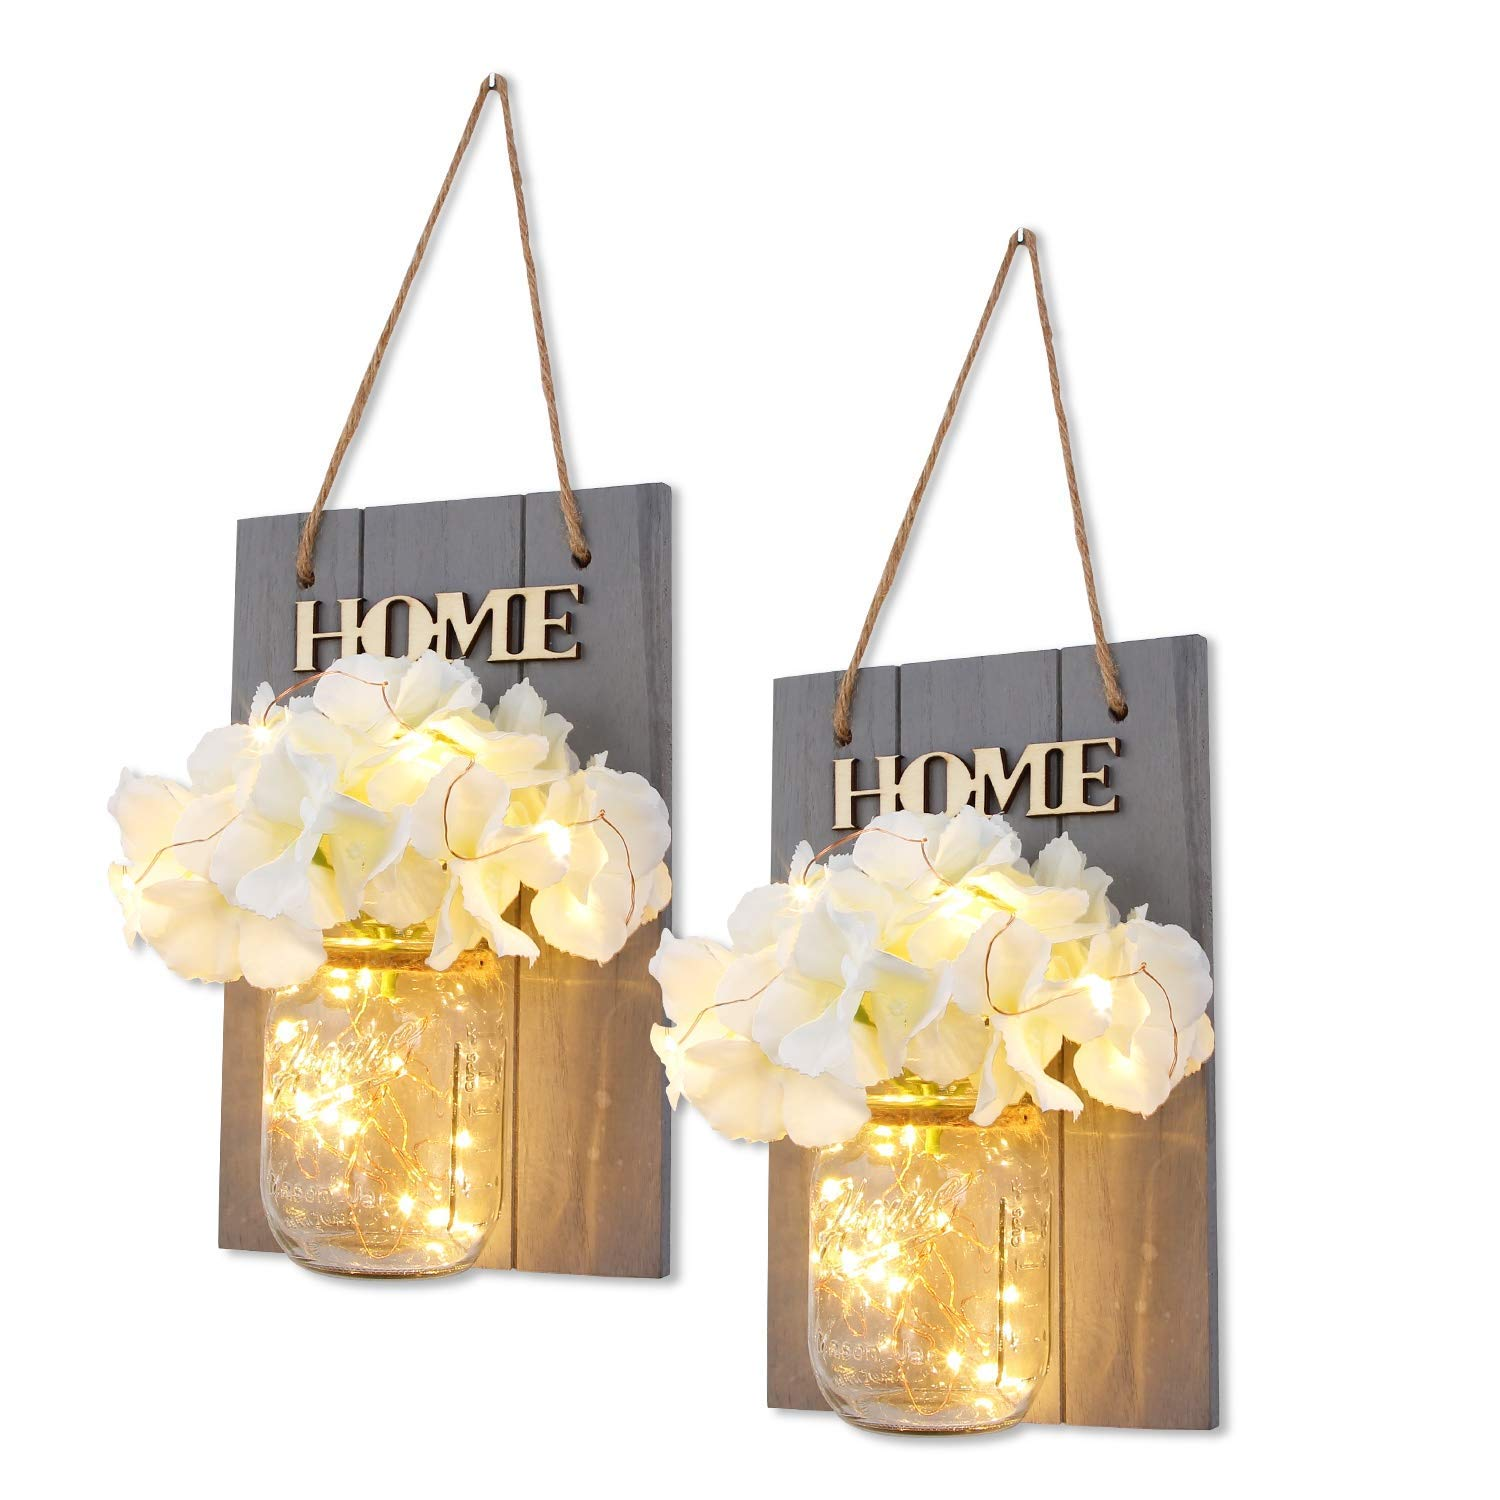 HABOM Mason Jar Sconce - Rustic Wall Decor with Fairy Lights - Hanging Wall Art for Indoor & Outdoor Farmhouse Garden Yard Home Decor - Battery Operated Night Lights Set of 2 by HABOM